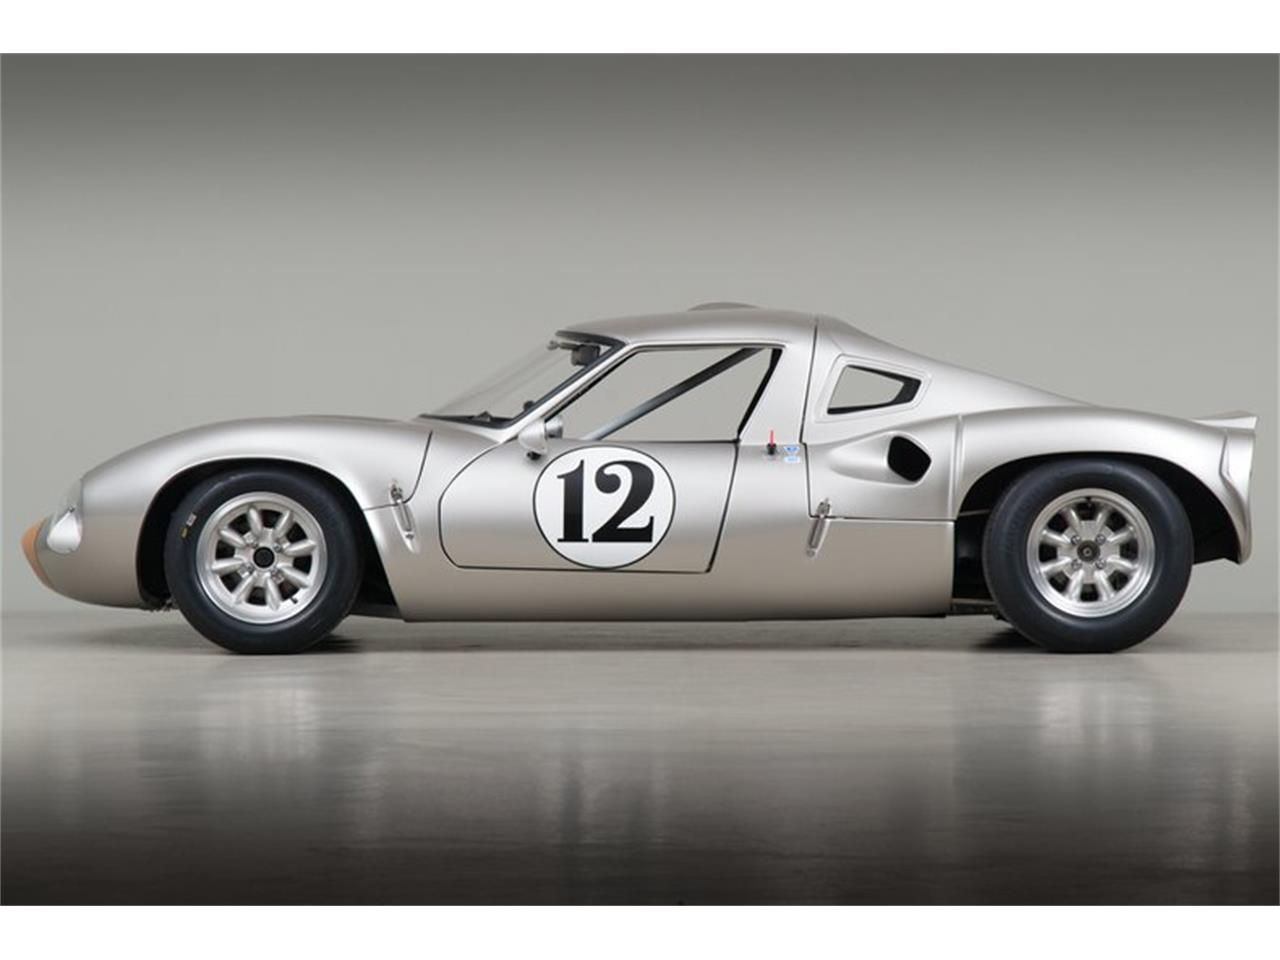 1967 Ginetta G12 for sale in Scotts Valley, CA – photo 2